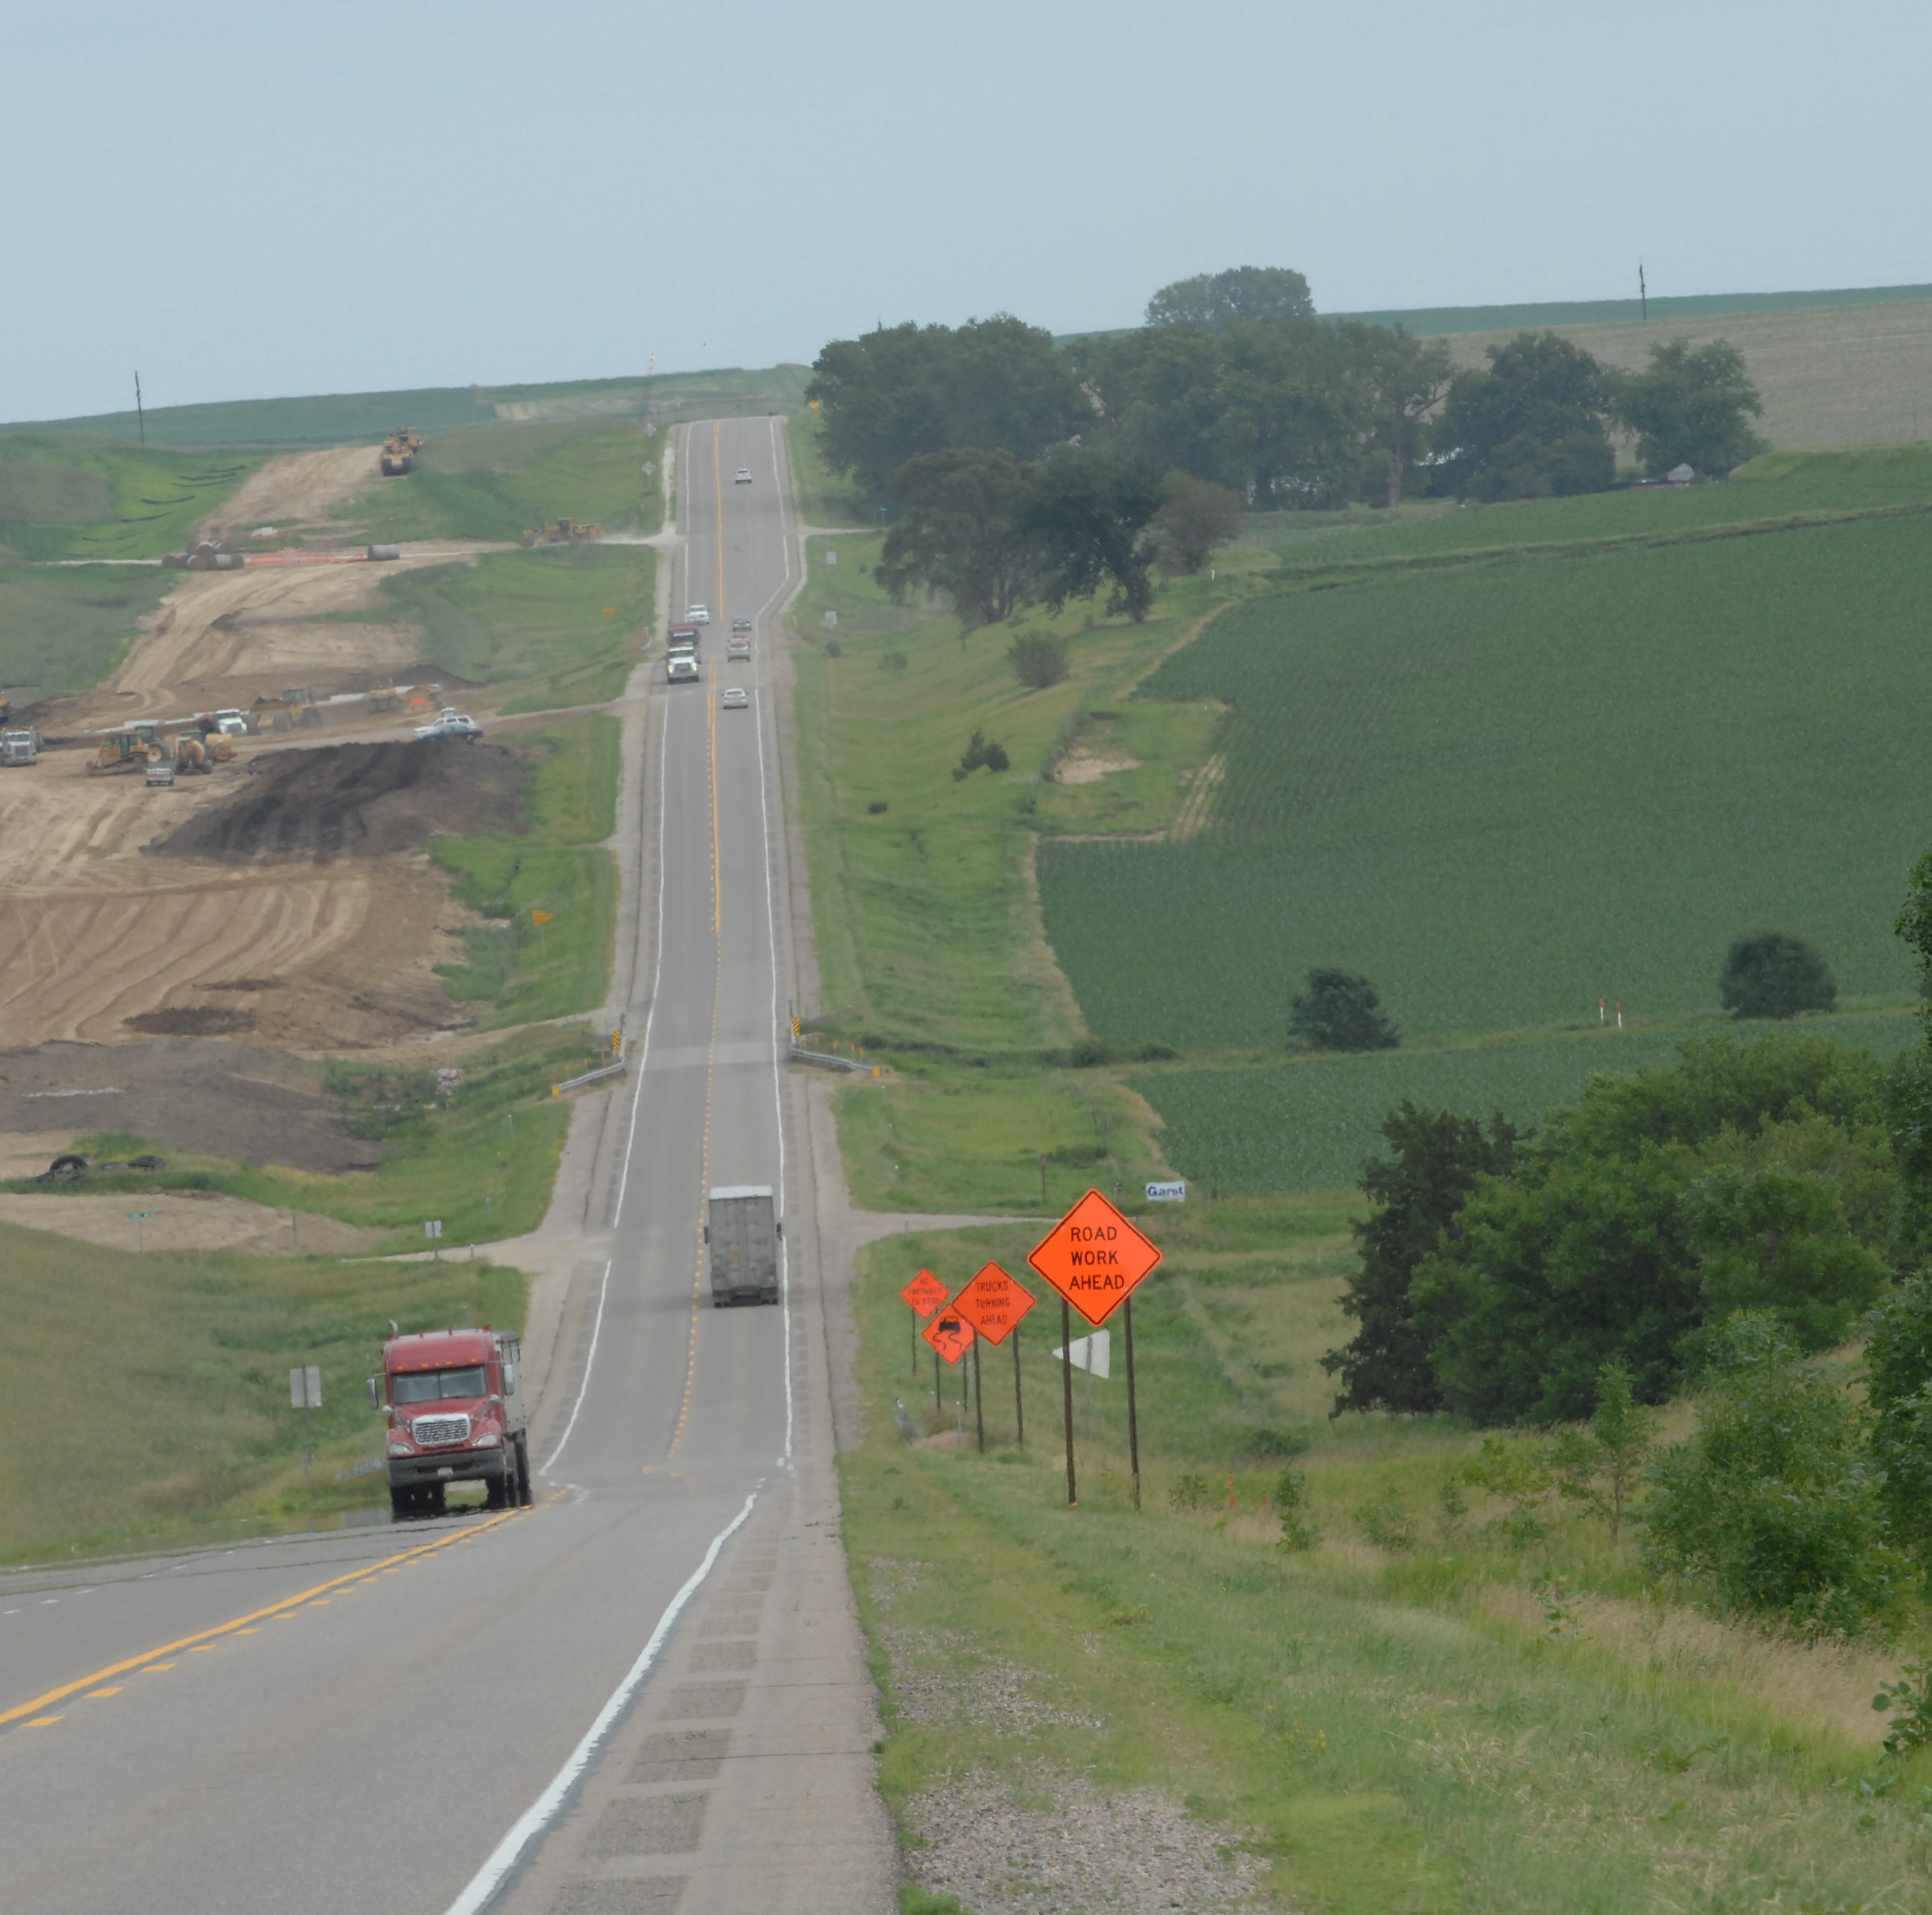 Iowa drivers, rejoice: 60 years later, northern Iowa's Highway 20 expansion is finally done